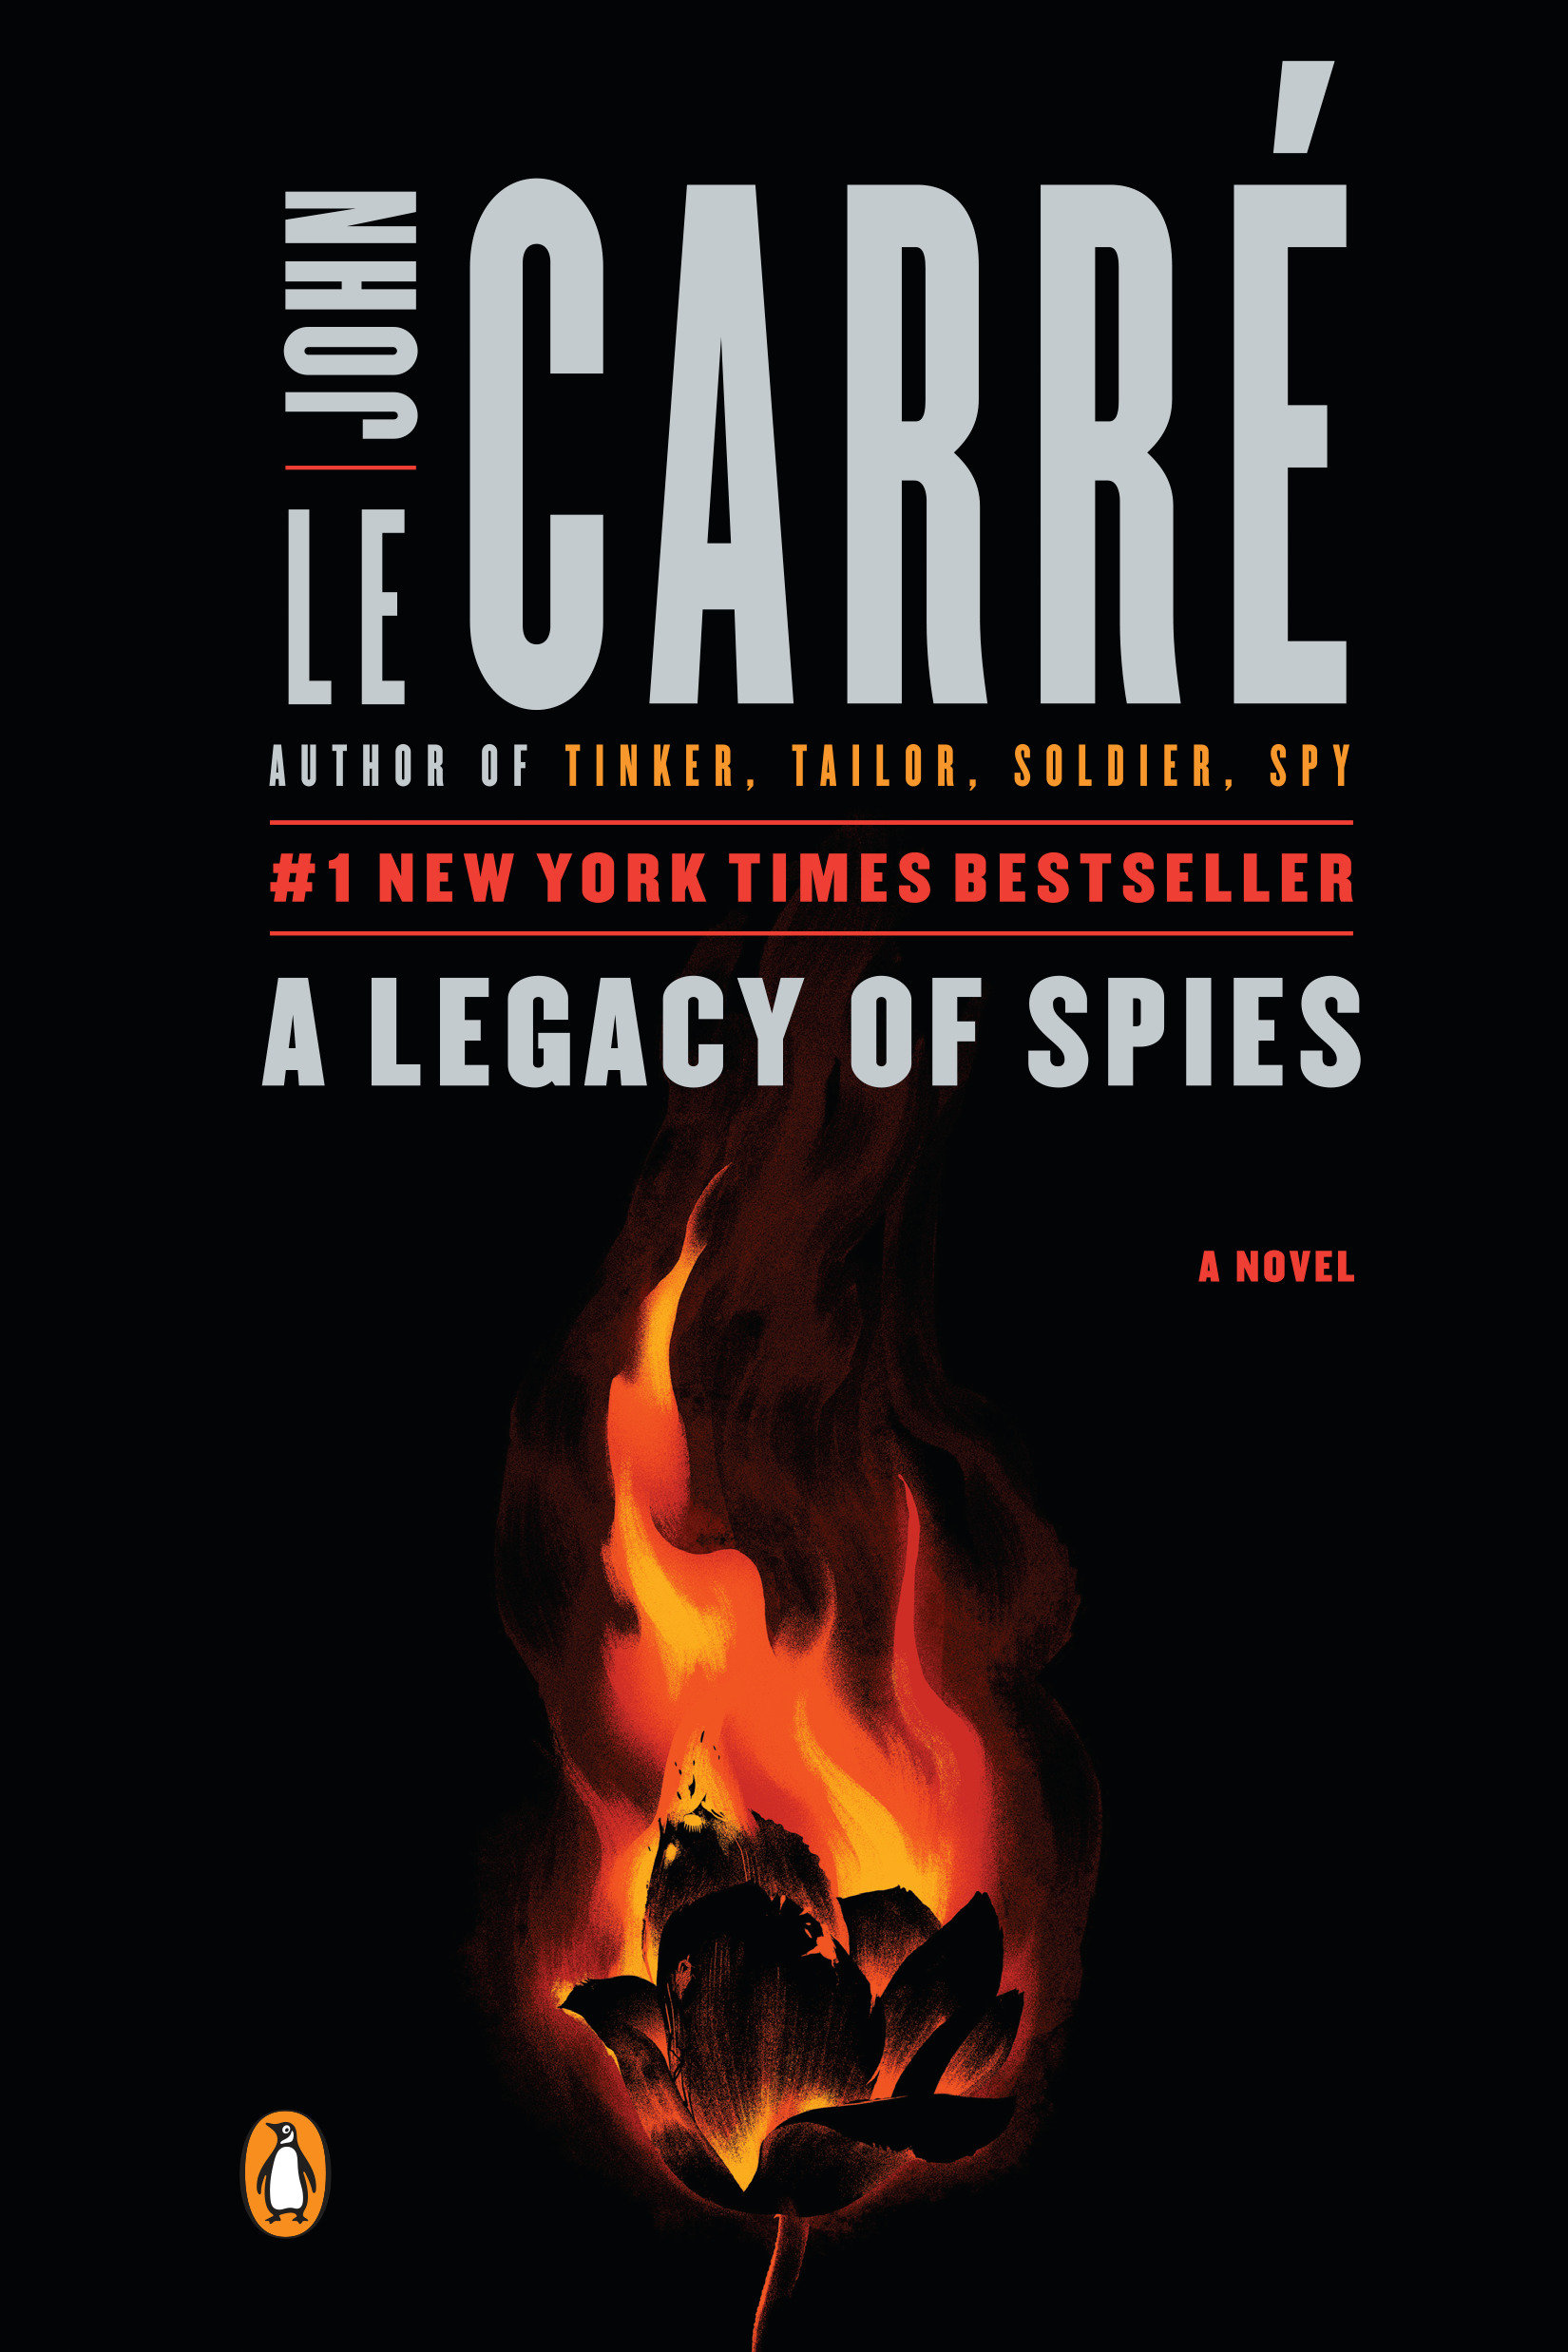 A Legacy of Spies A Novel